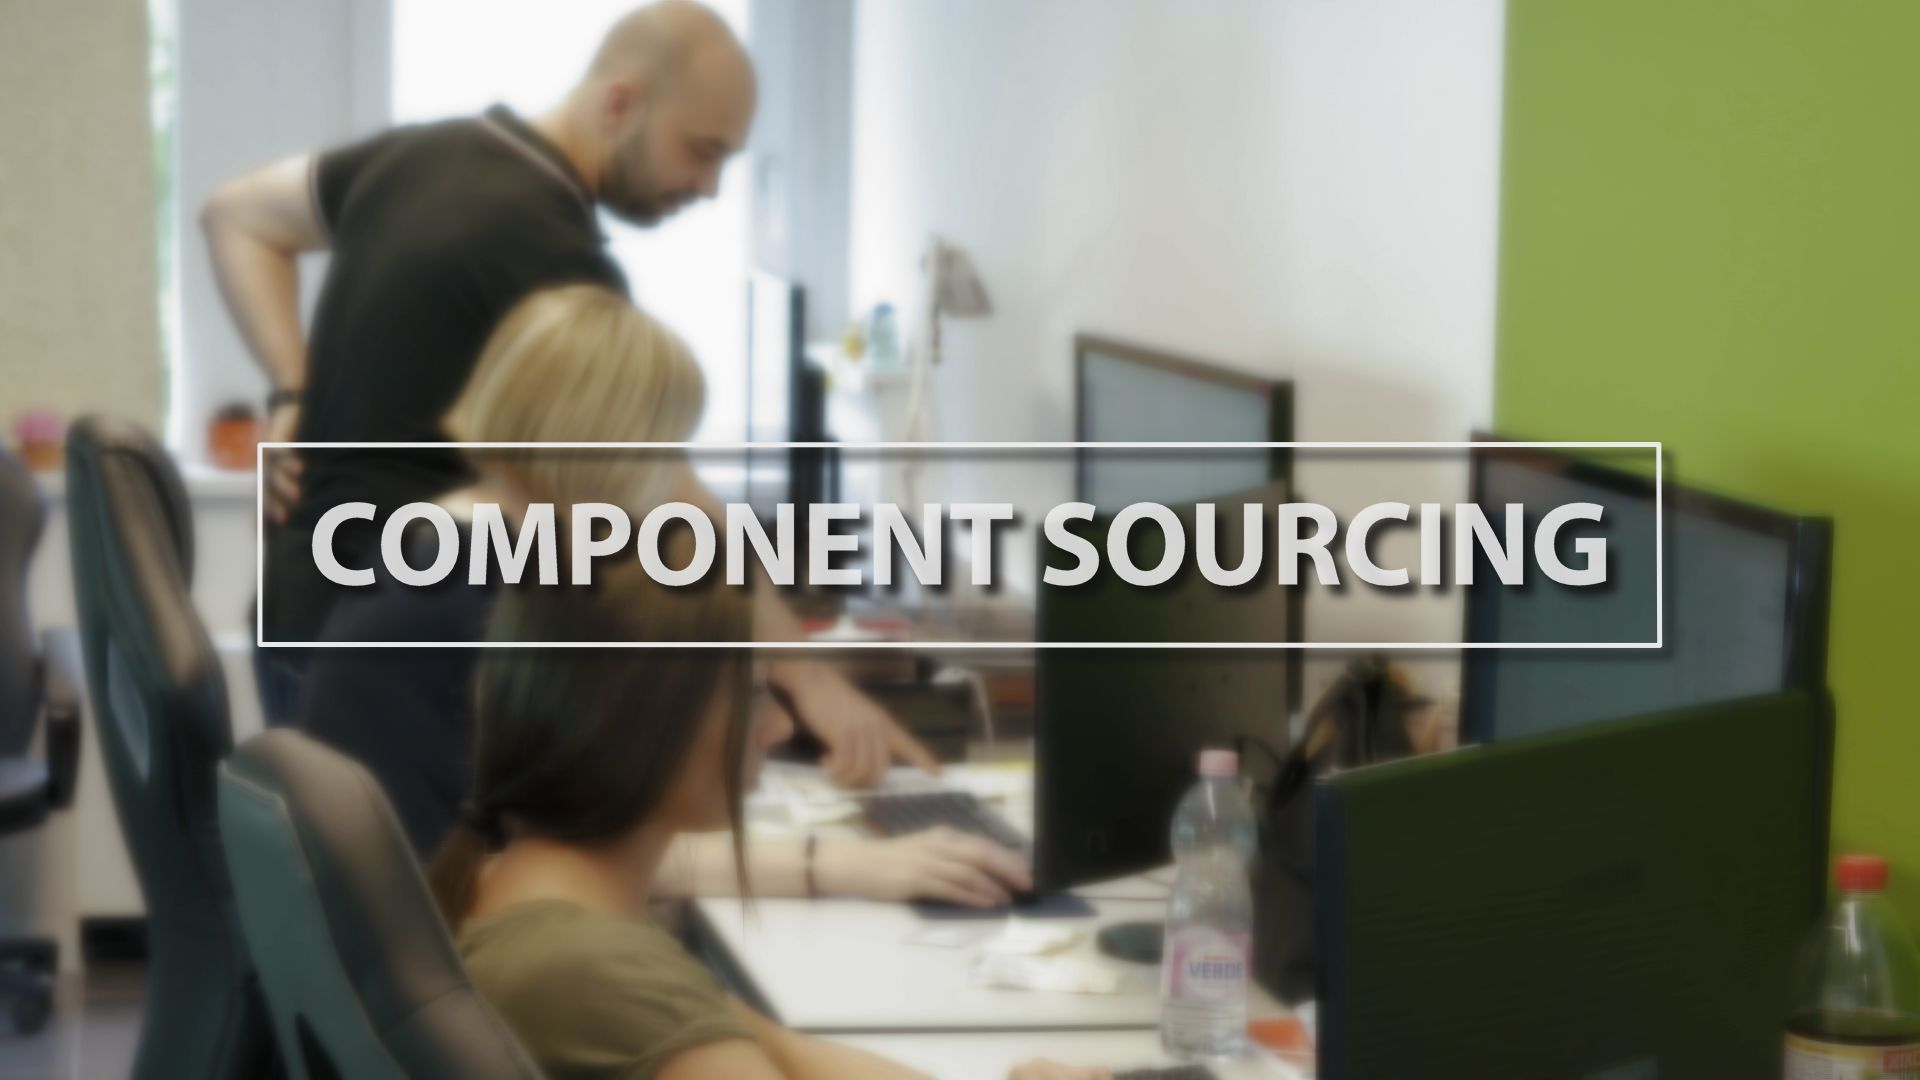 Technology Thursday: Component Sourcing